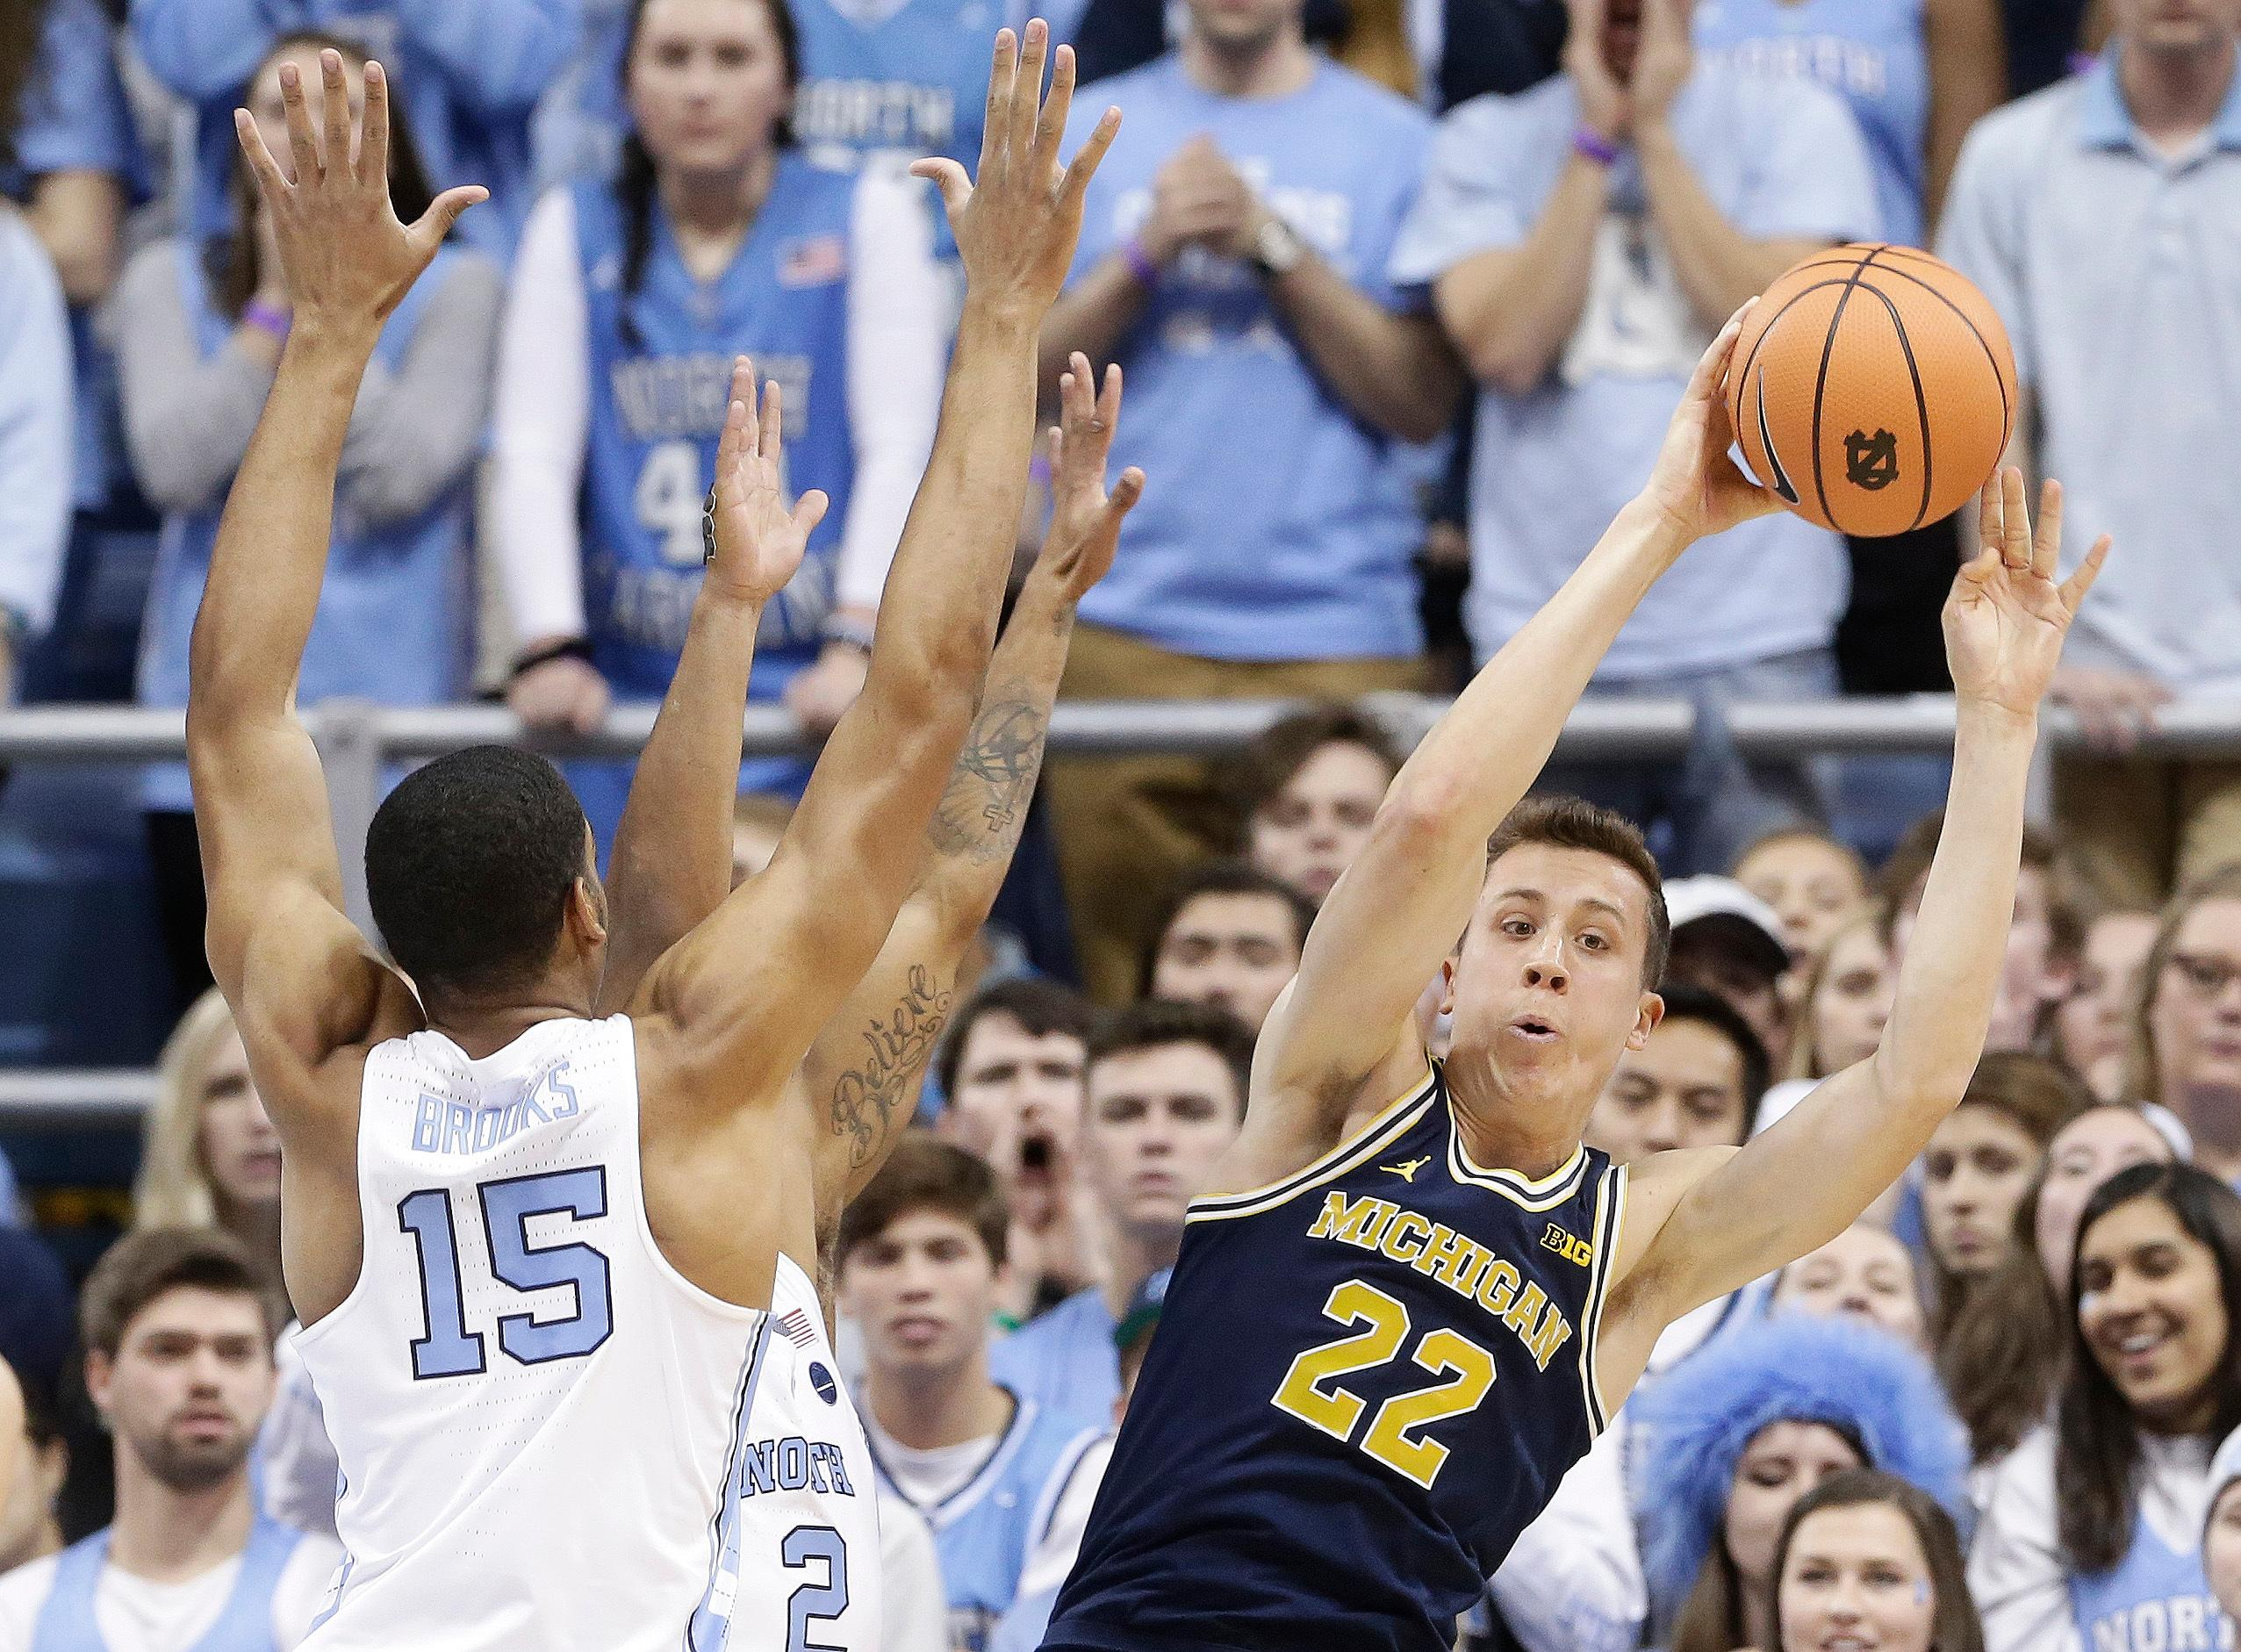 North Carolina's Garrison Brooks (15) defends while Michigan's Duncan Robinson (22) looks to pass during the first half of an NCAA college basketball game in Chapel Hill, N.C., Wednesday, Nov. 29, 2017. (AP Photo/Gerry Broome)